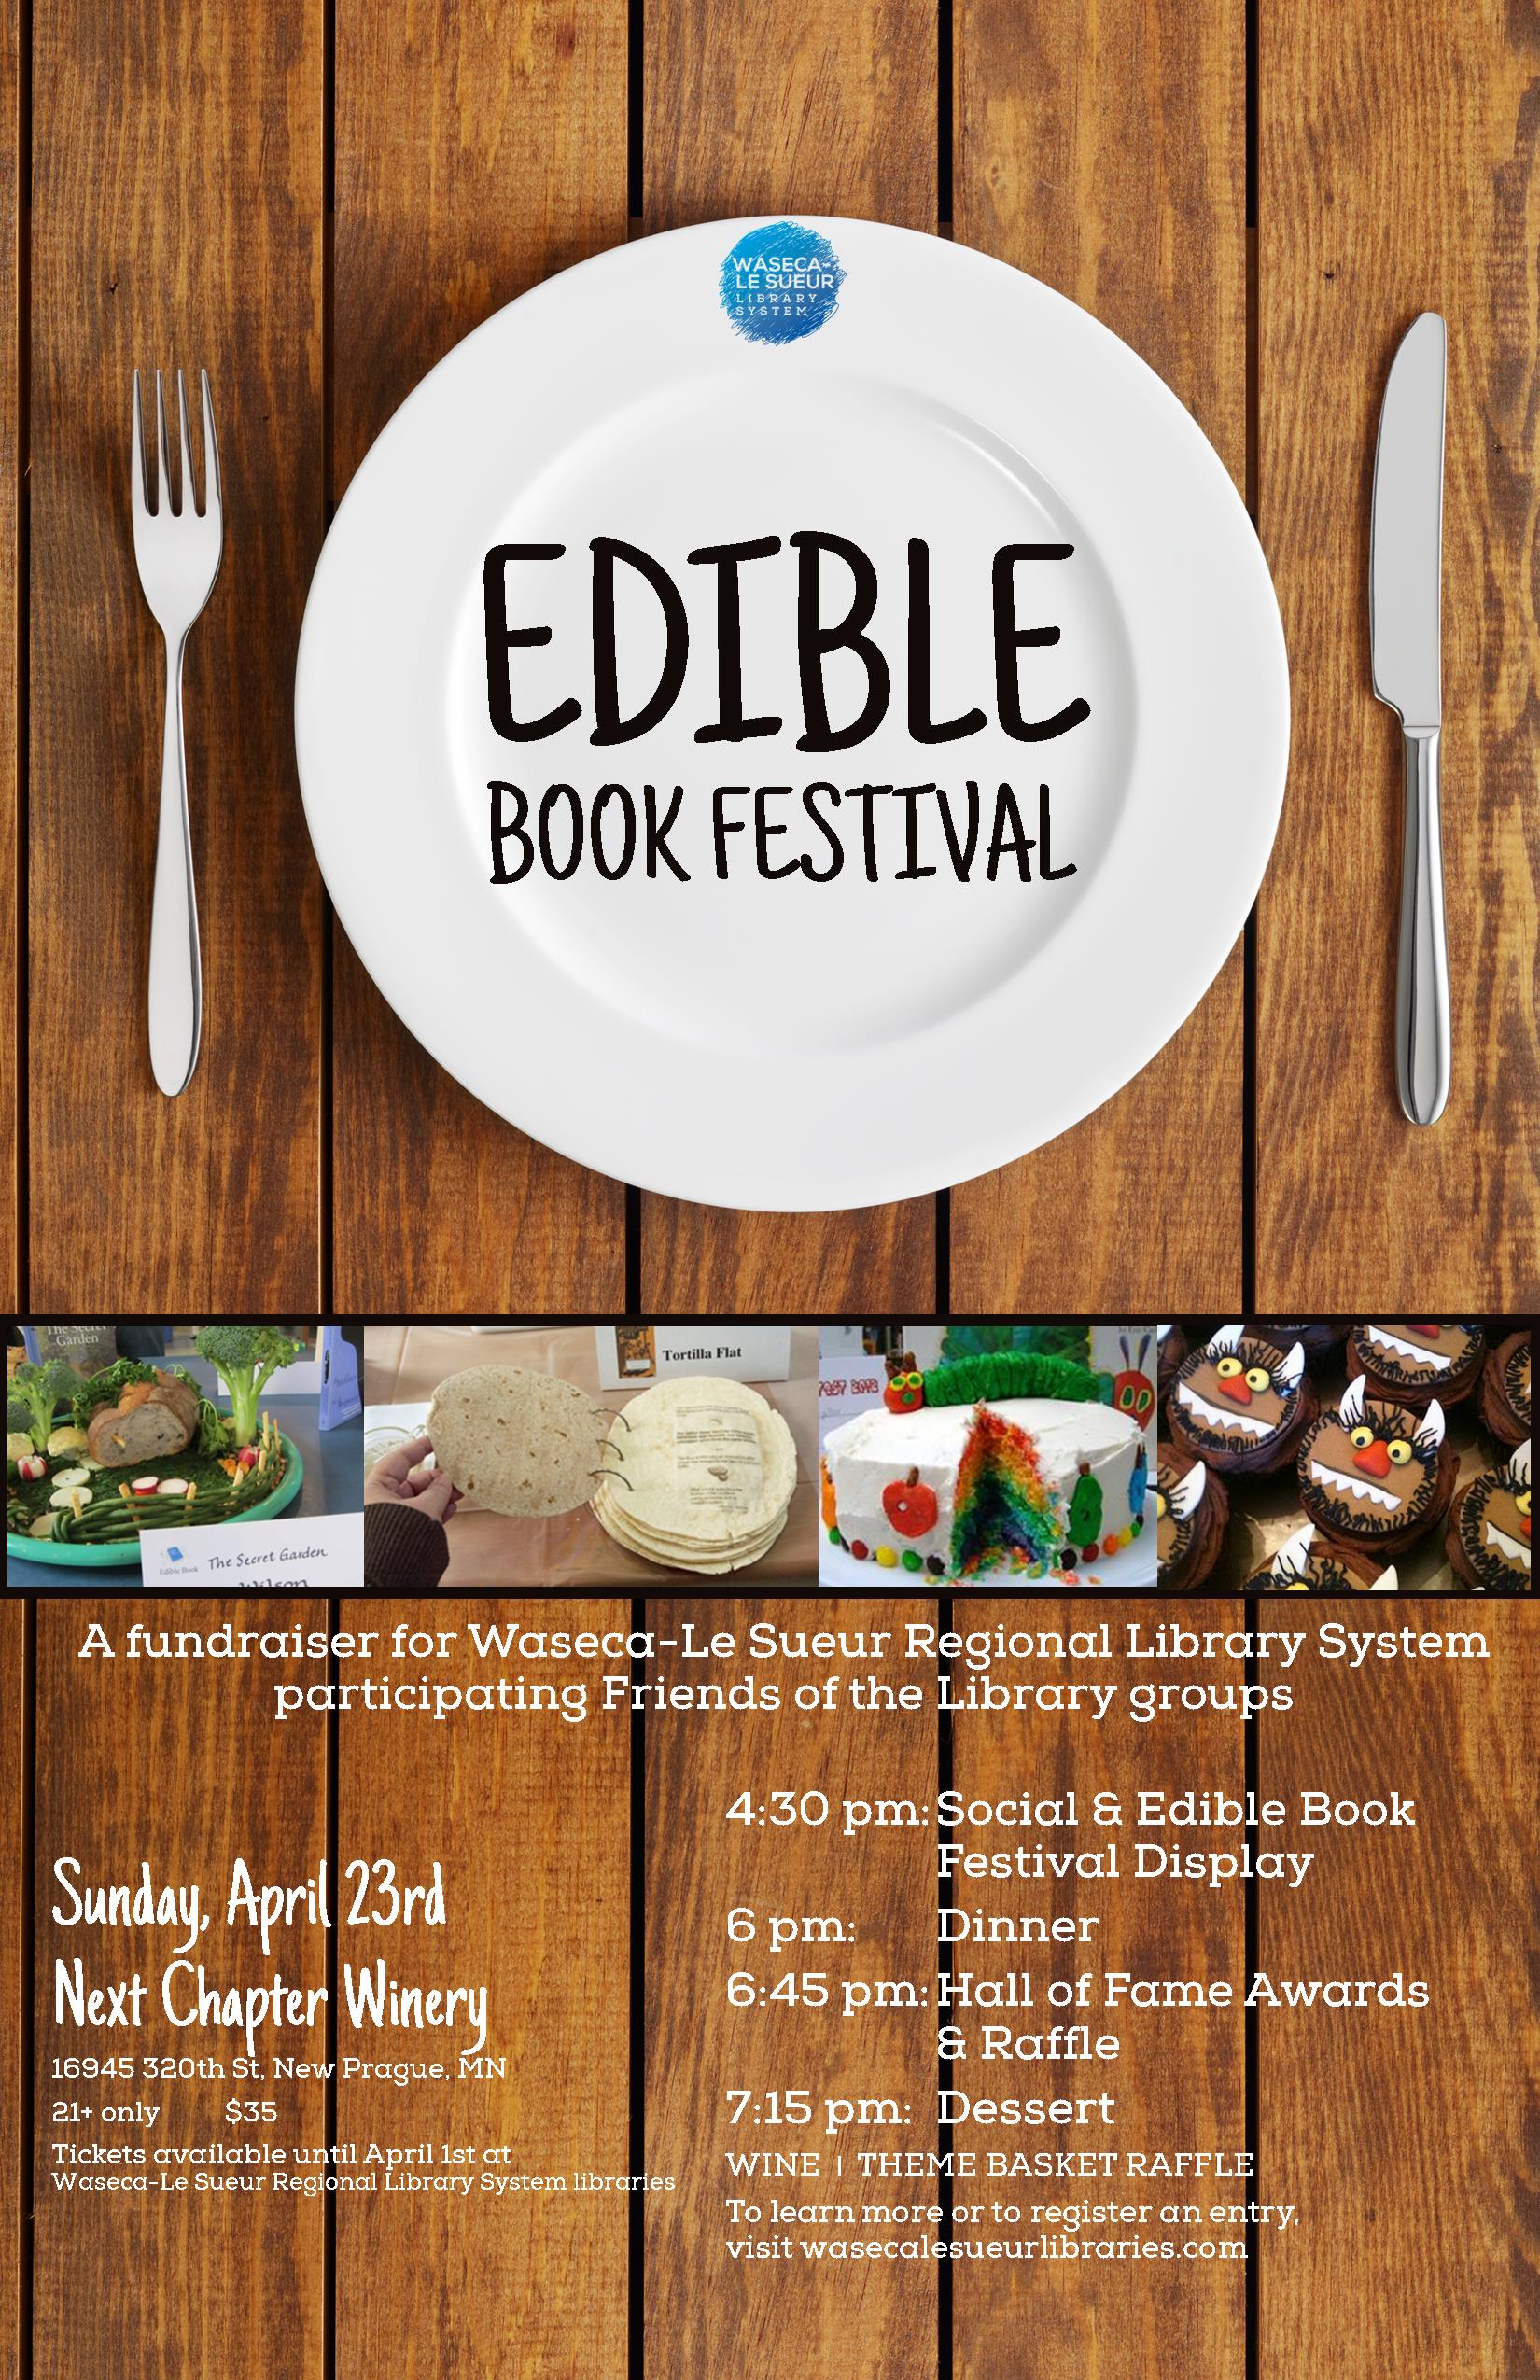 Attend The Edible Book Festival!